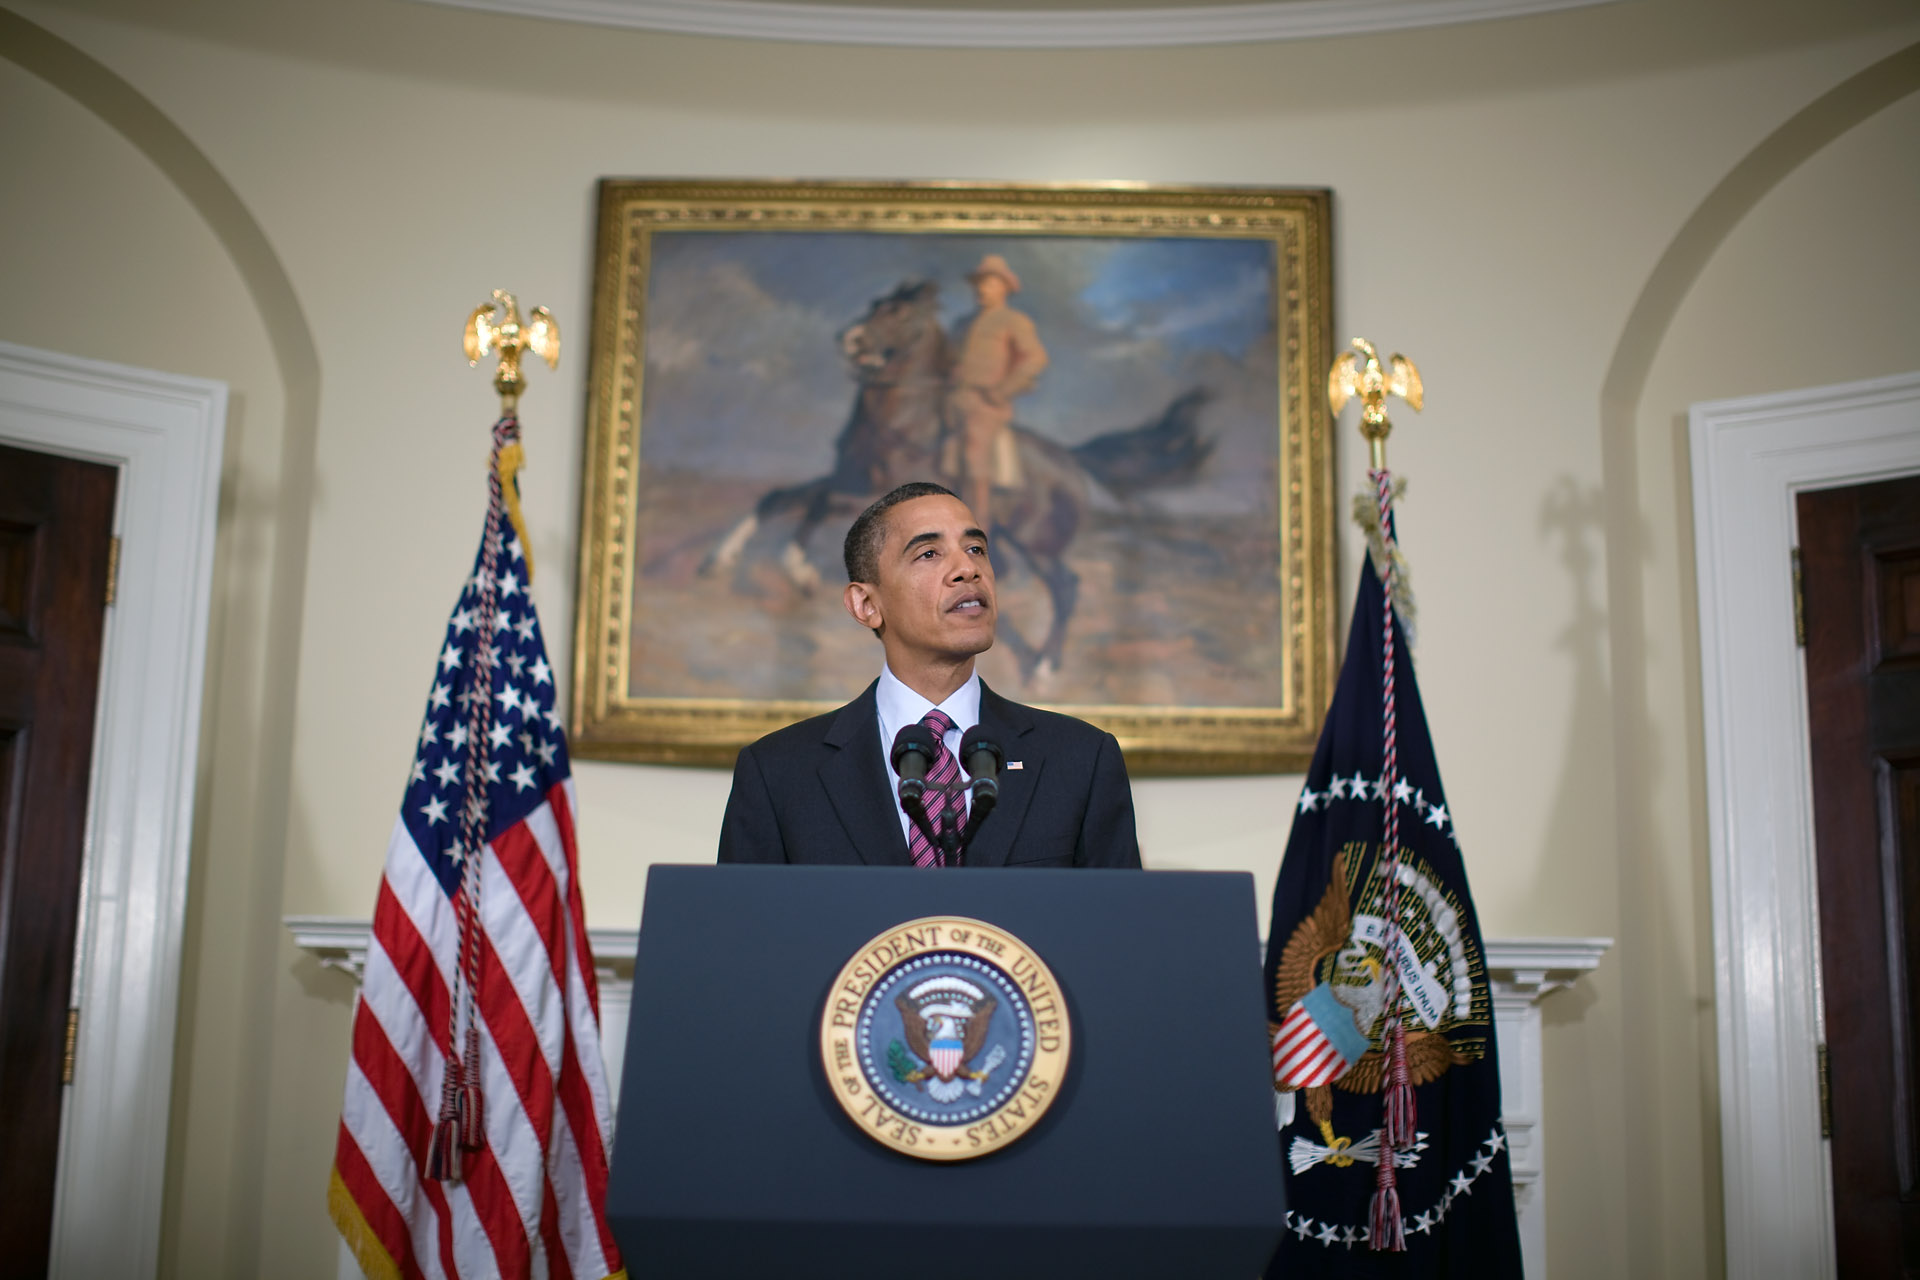 President Obama delivers remarks in the Roosevelt Room